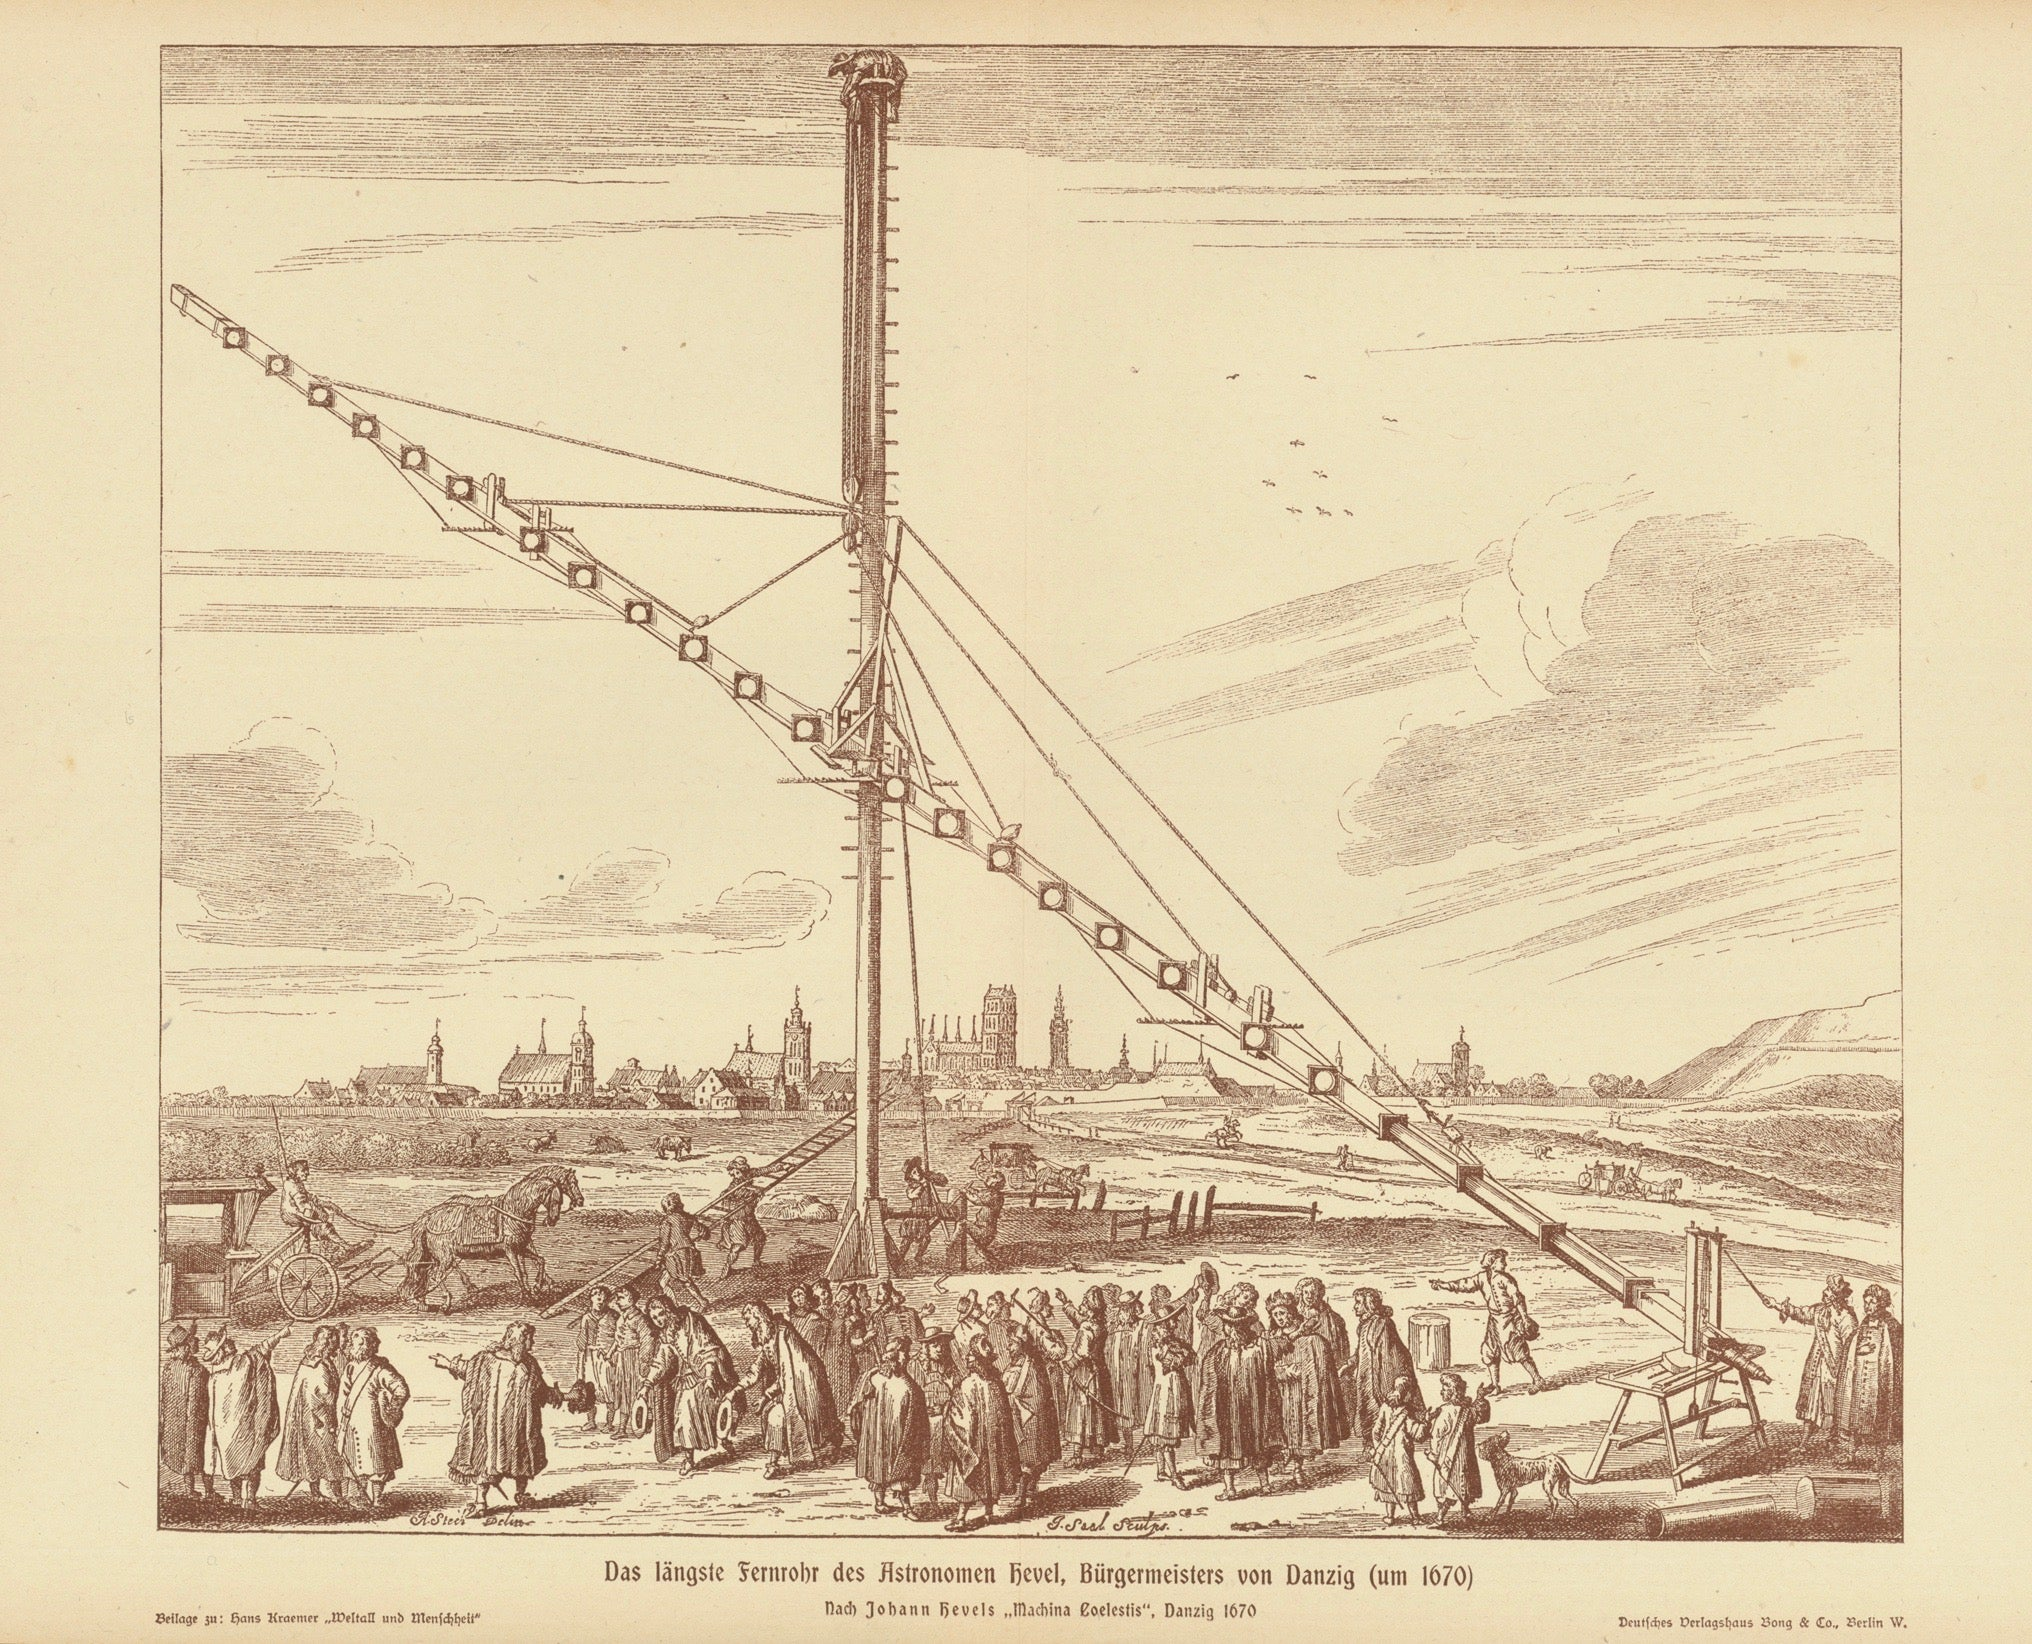 """Das laengste Fernrohr des Astronomen Hevel, Buergermeister von Danzig (um 1670)"" (the longest telescope of the astronomer Johannes Hevelius, mayor of Danzig ca 1670)"